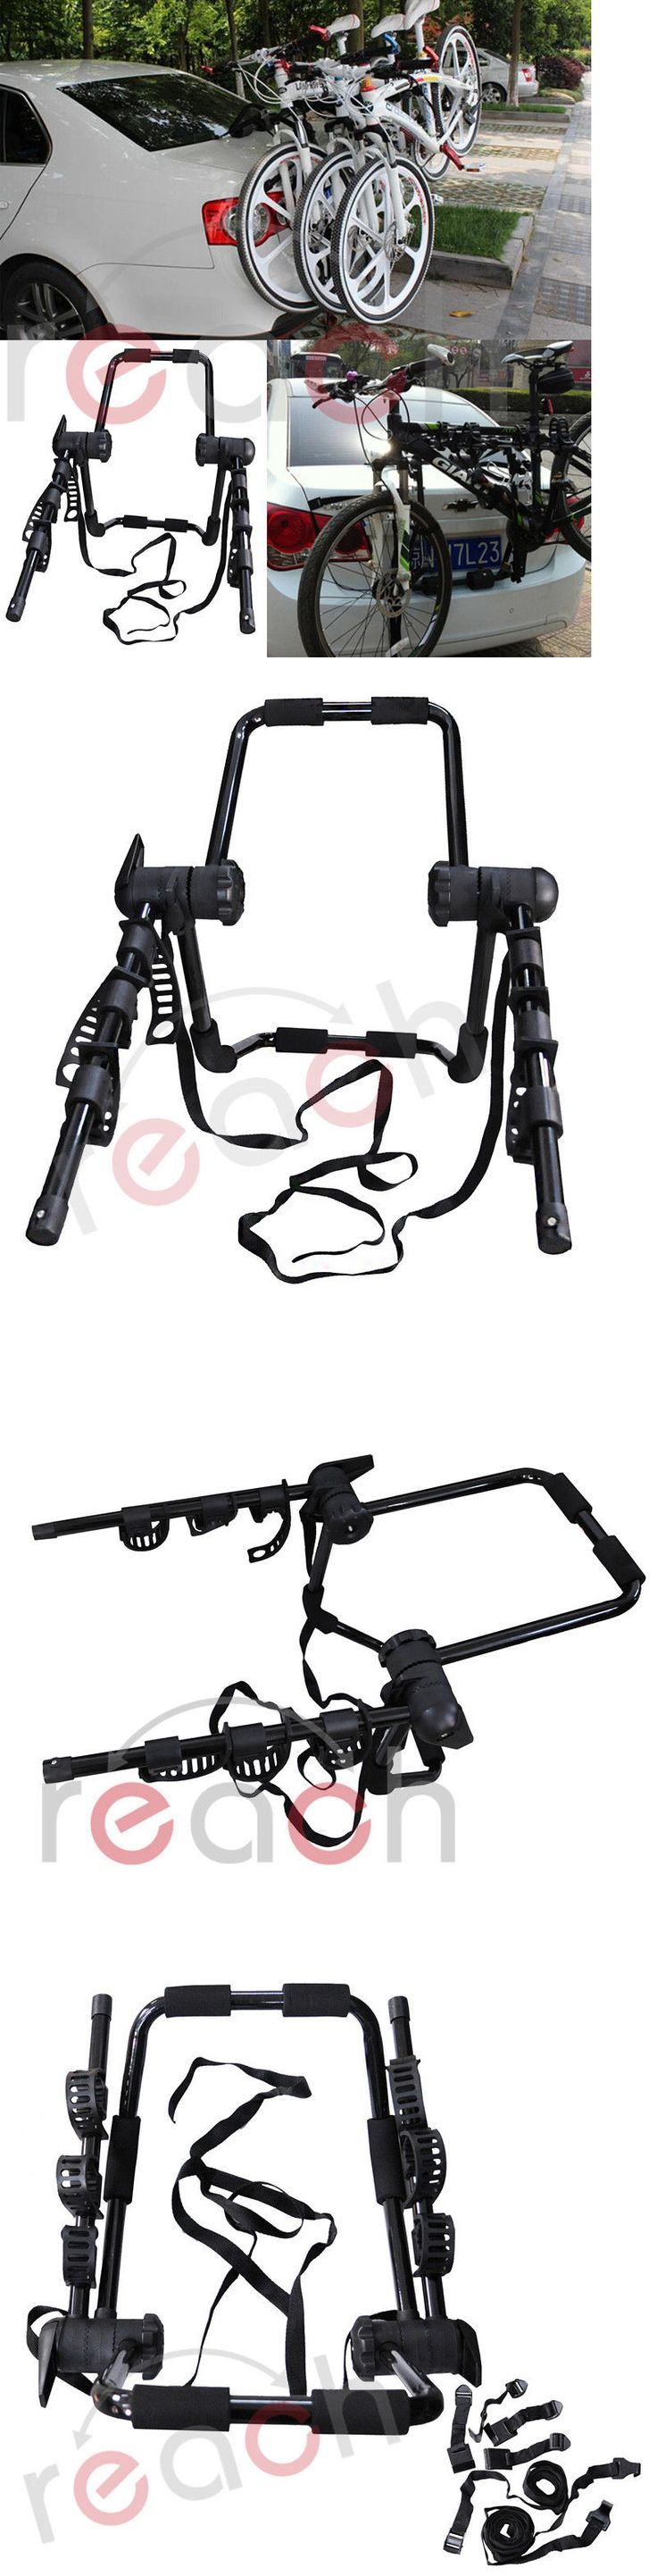 Car and Truck Racks 177849: New 3-Bike Trunk-Mount Hatchback Suv Or Car Sport Bicycle Carrier -> BUY IT NOW ONLY: $39.45 on eBay!